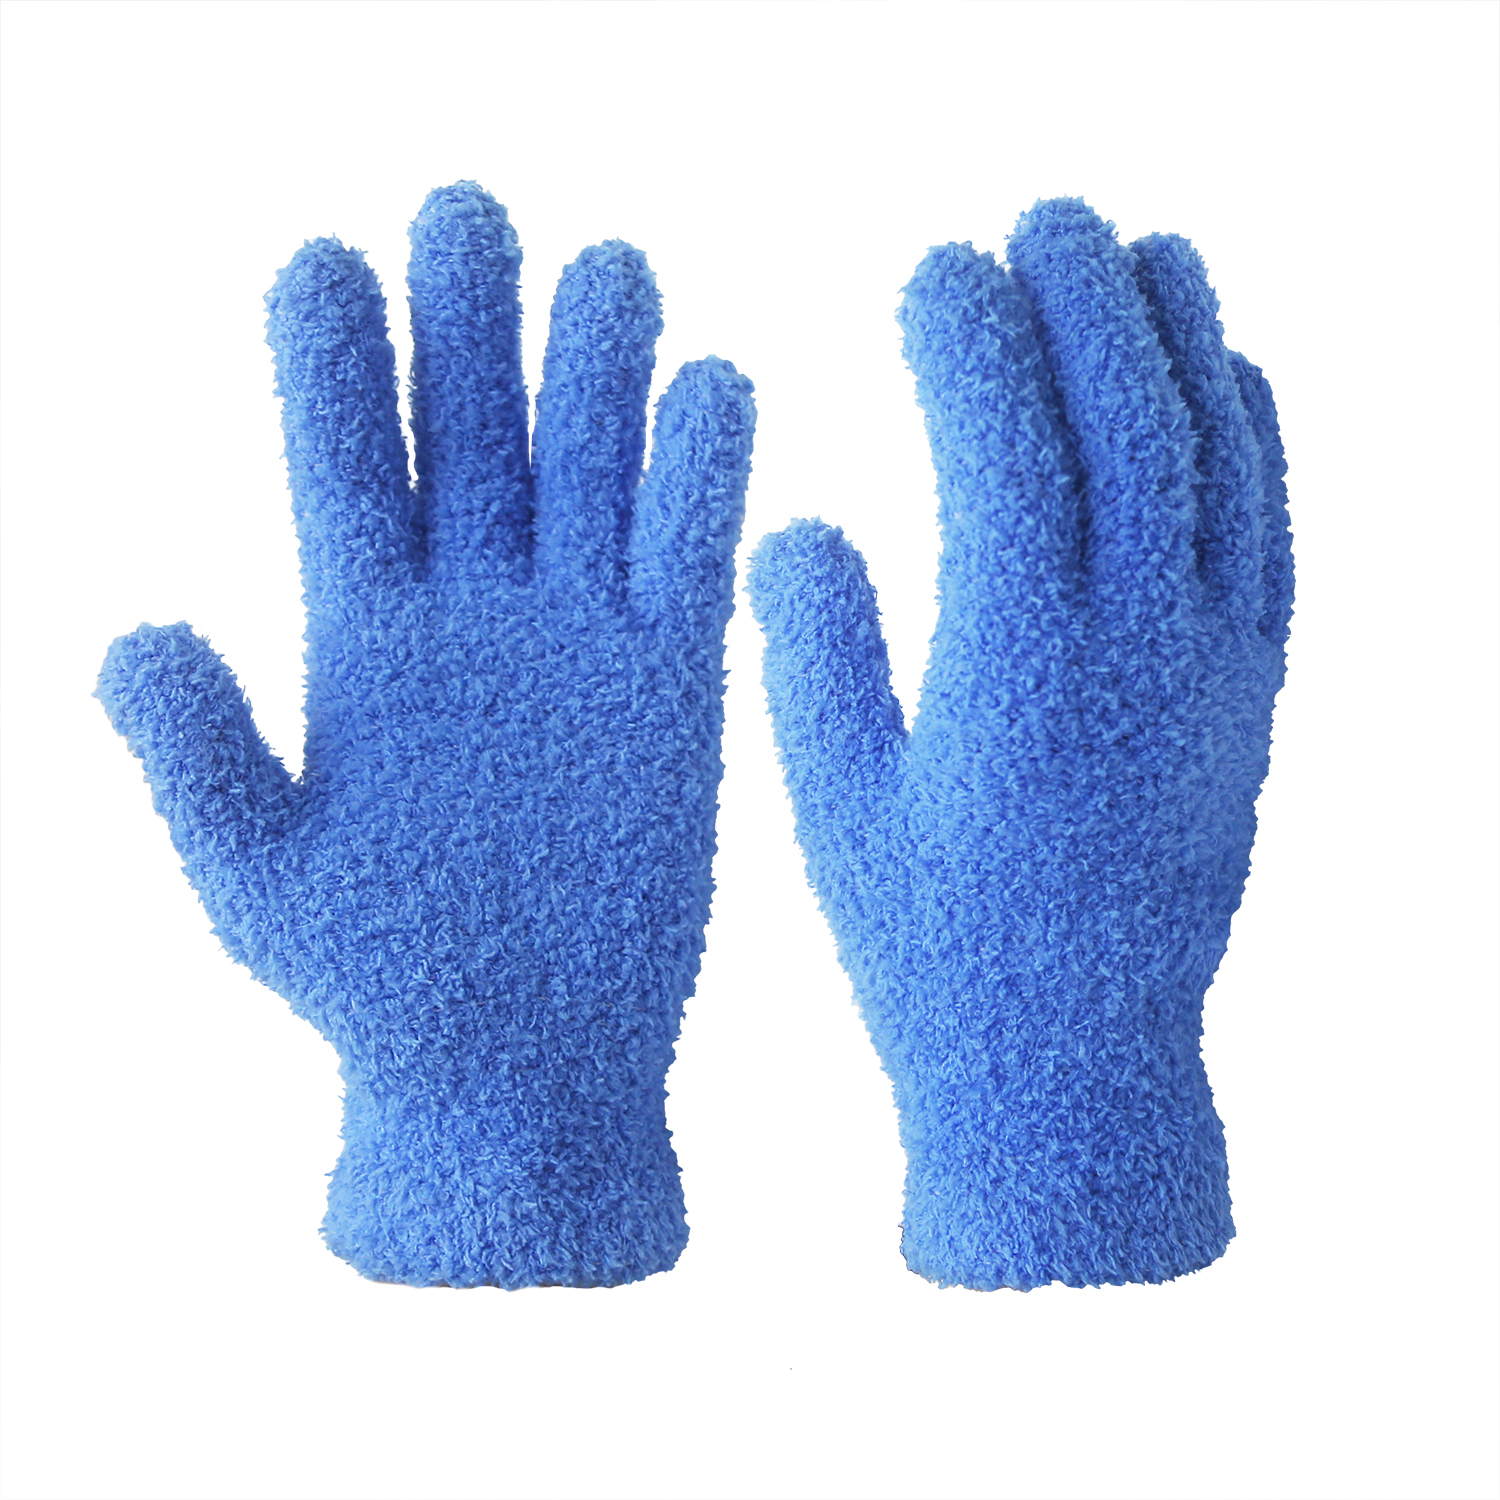 100% Microfiber Polyester Dust Cleaning Clean Room Gloves